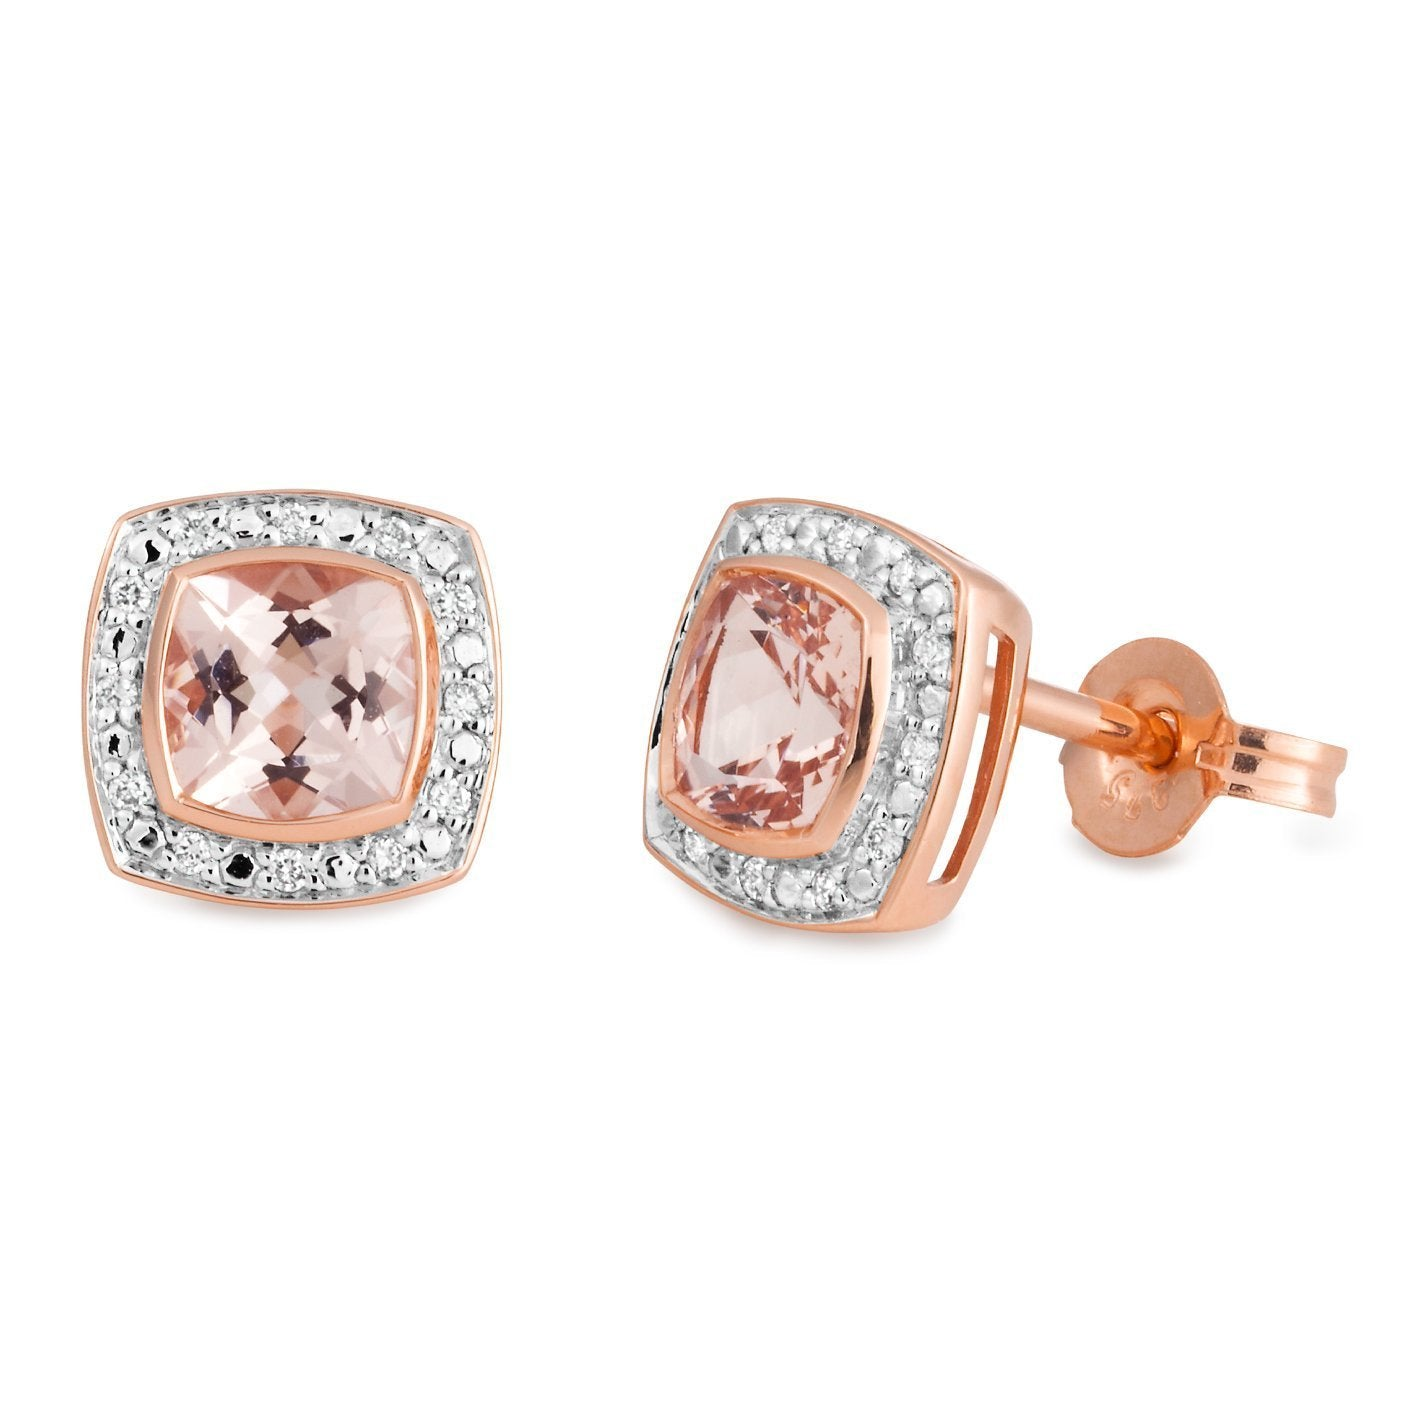 Morganite & Diamond Bezel/Bead Set Coloured Stone Earrings in 9ct Rose Gold